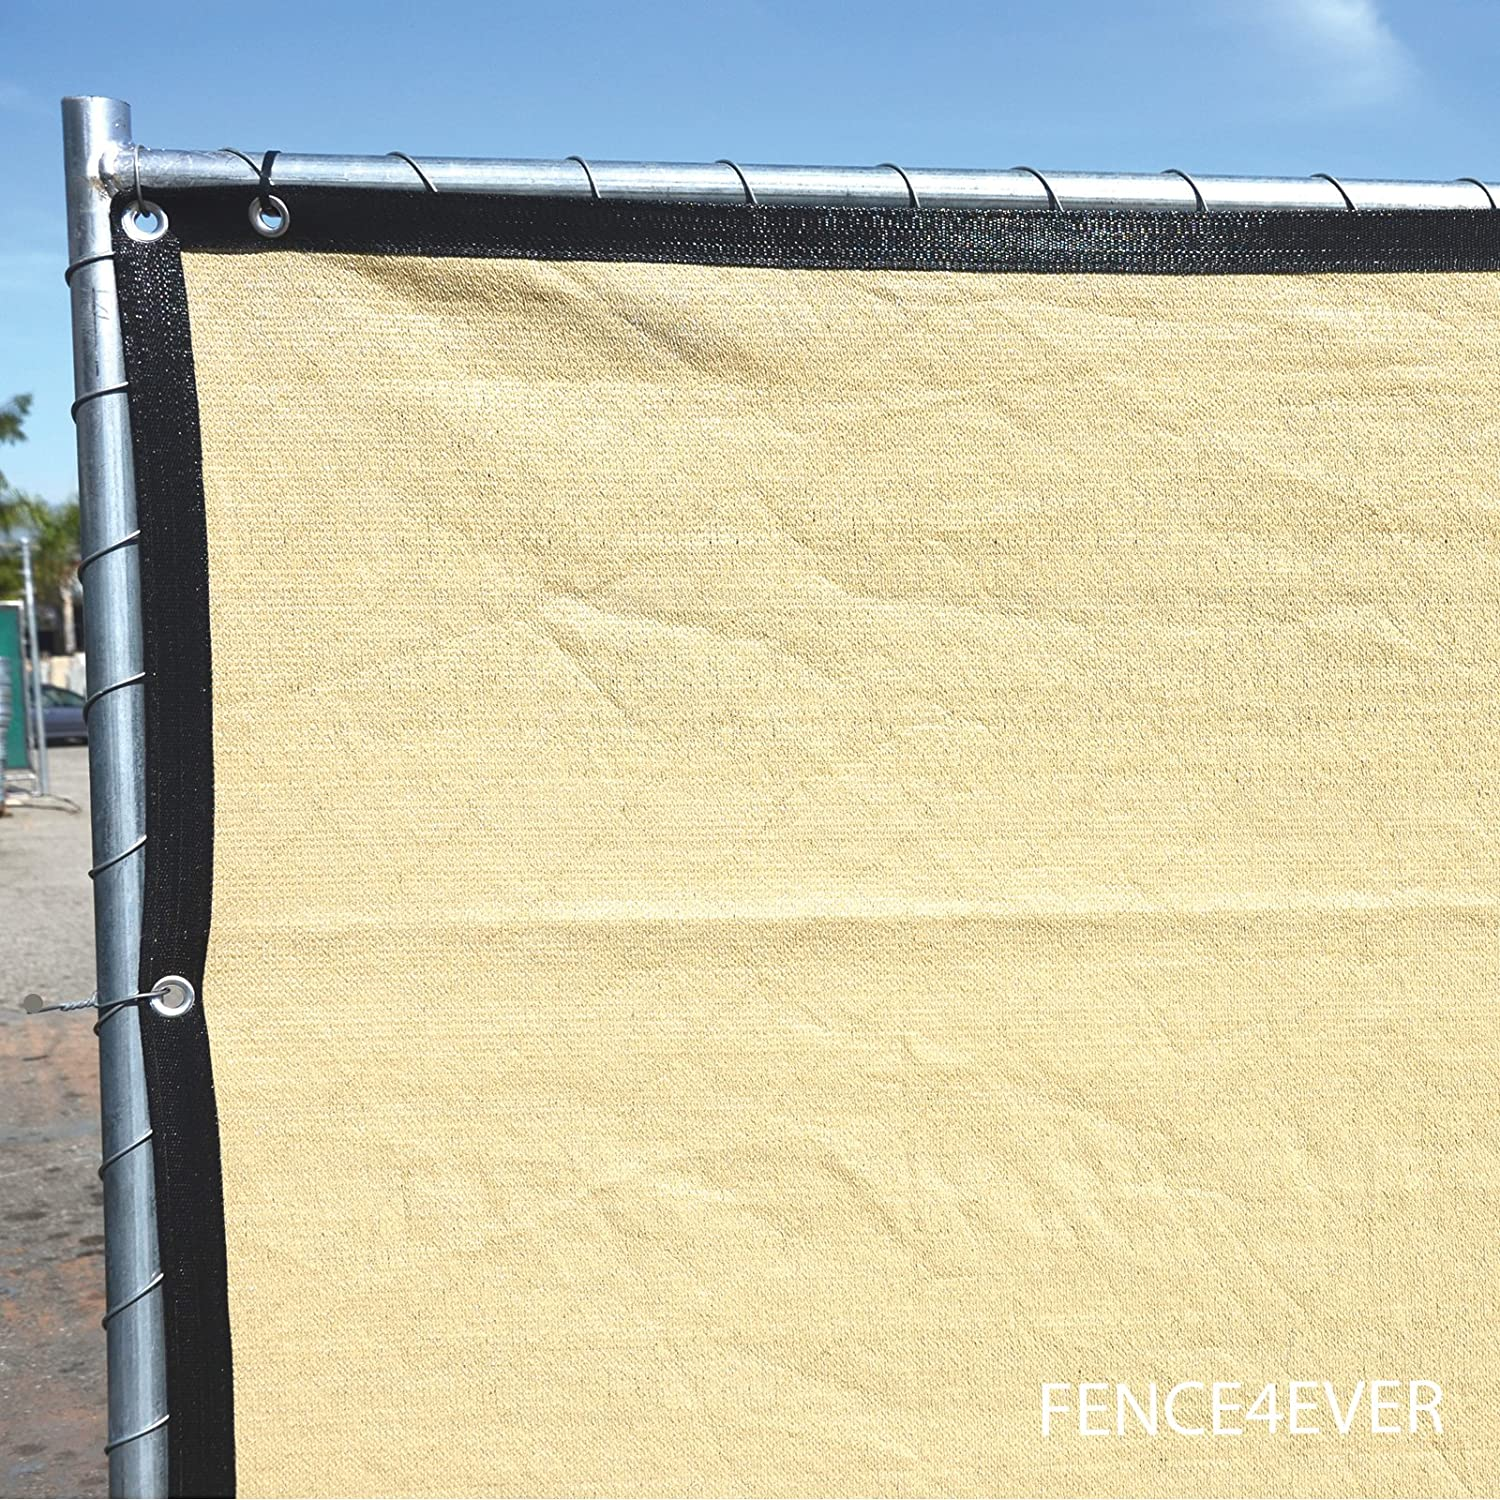 Great Amazon.com : Fence4ever 6u0027x25u0027 3rd Gen Tan Beige Fence Privacy Screen  Windscreen Shade Cover Mesh Fabric (Aluminum Grommets) Home, Court, Or  Construction ...